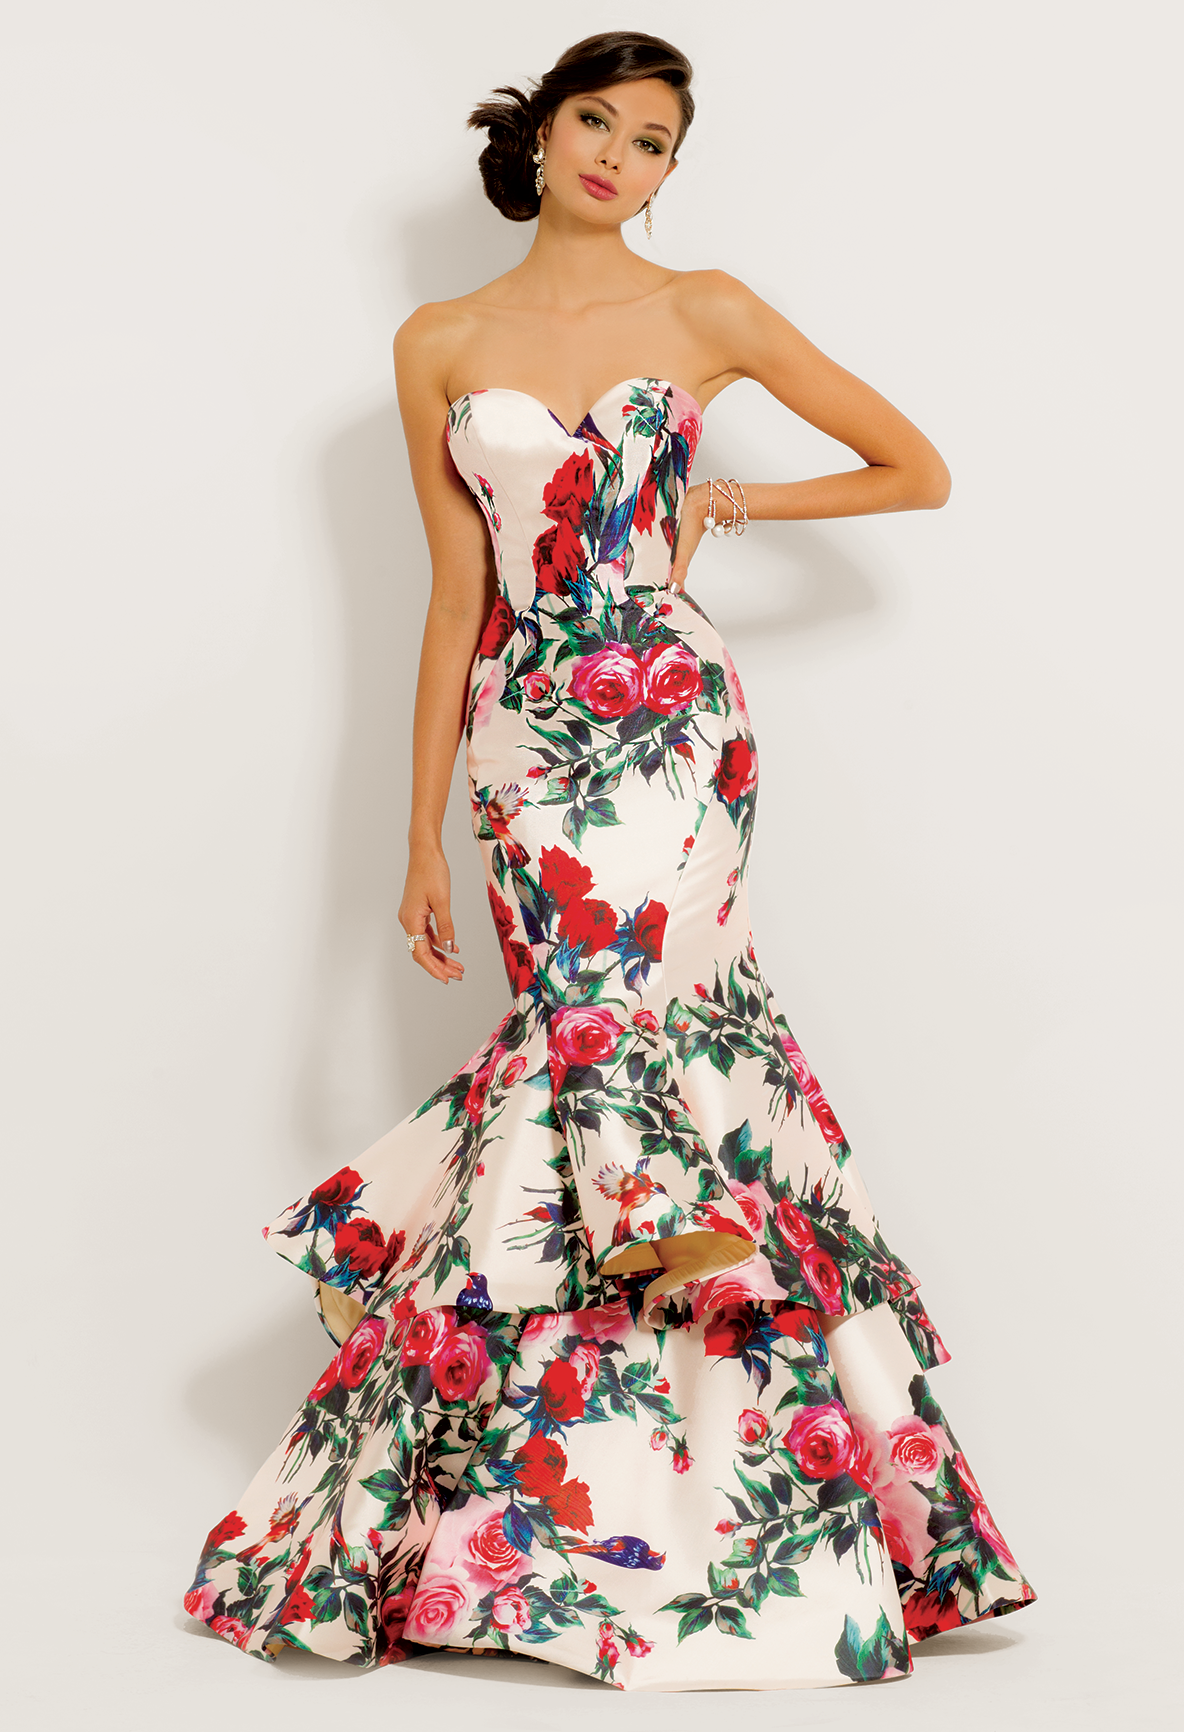 2c052847a068 ... gorgeous evening gown! With its strapless sweetheart neckline, floral  print pattern, and tiered mermaid skirt, this long prom dress is an  absolute gem.